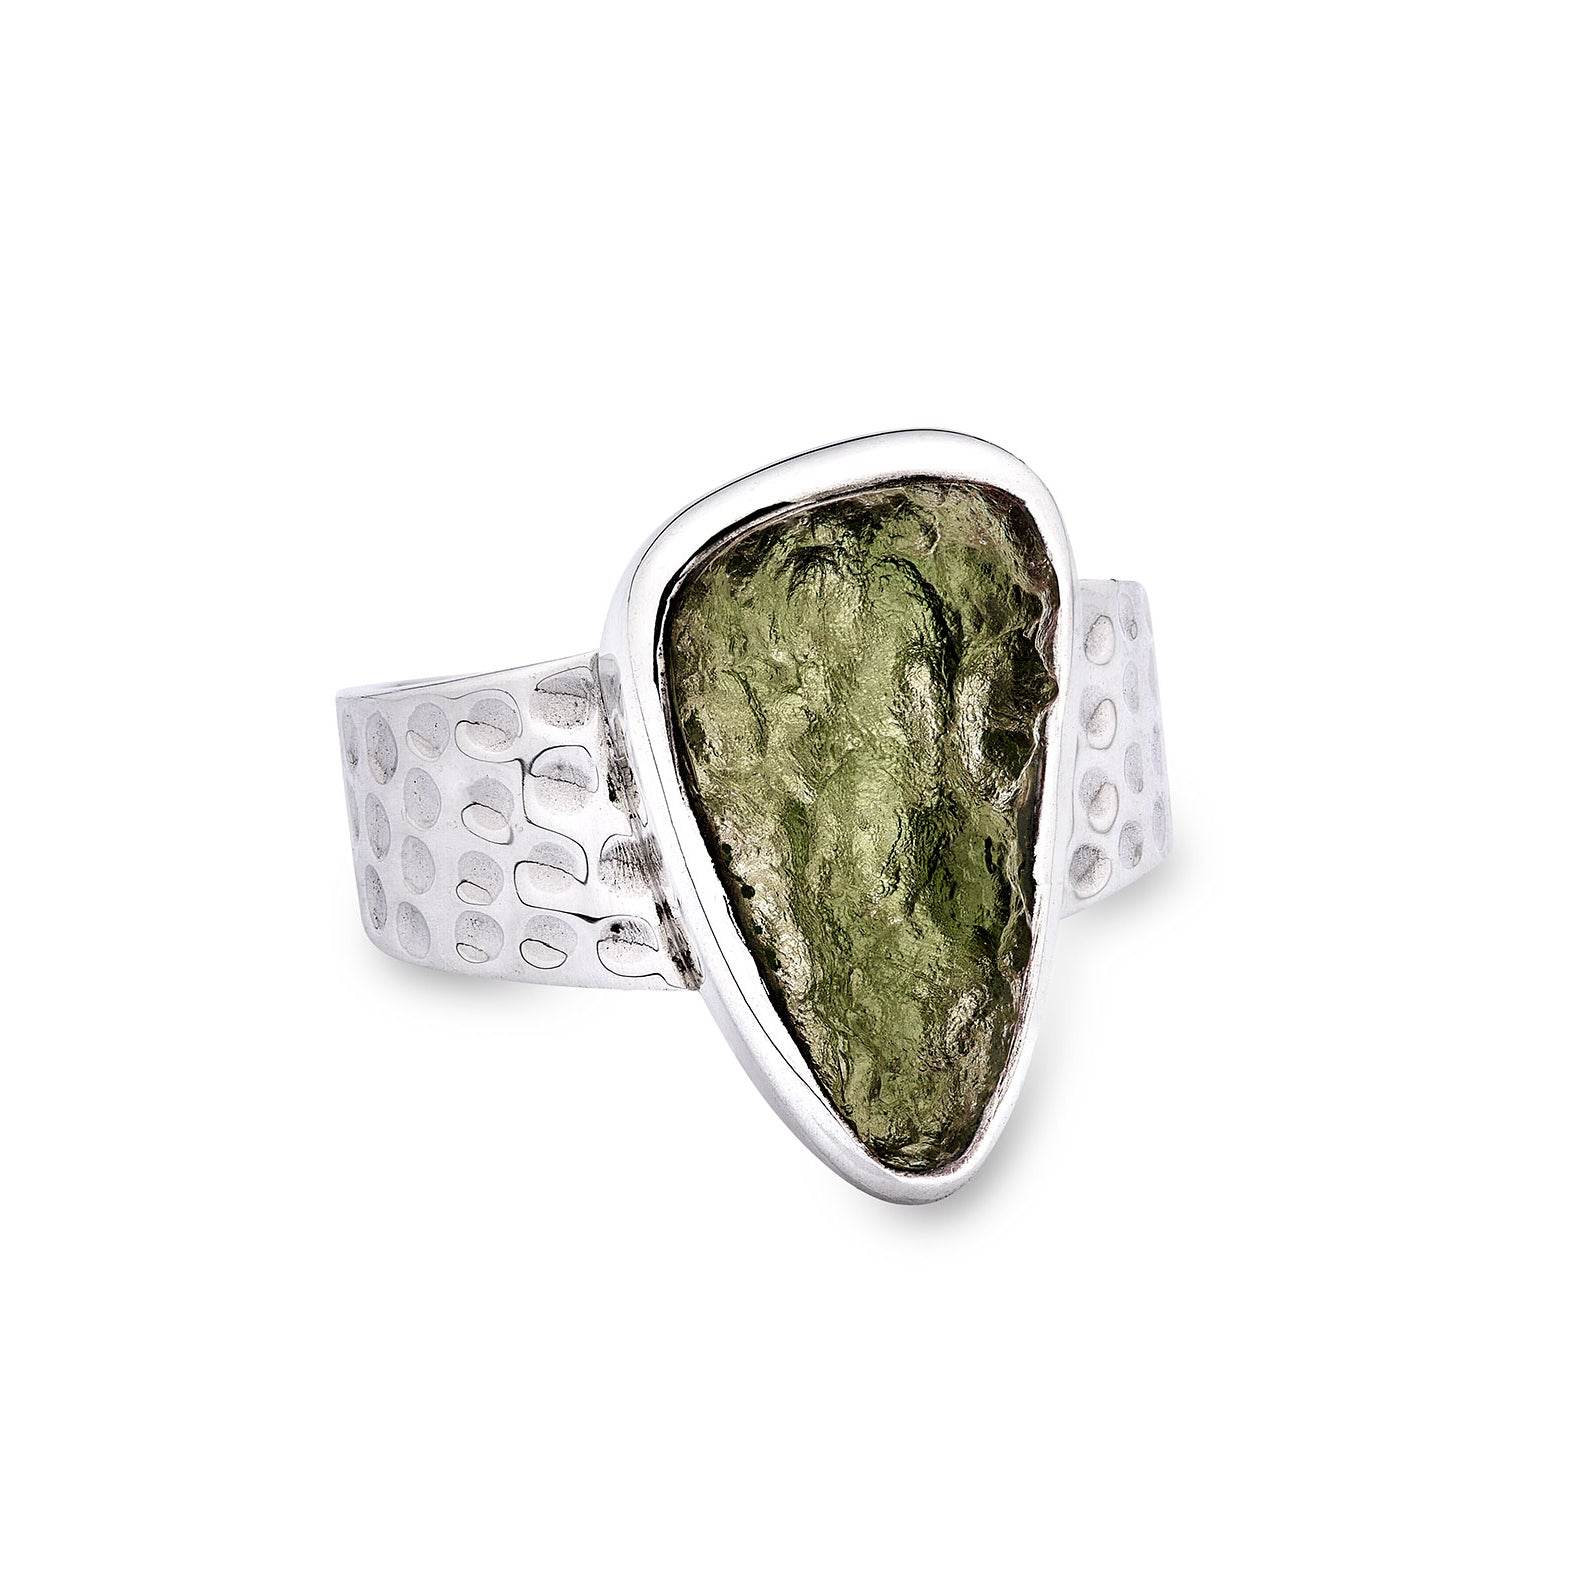 Moldavite Ring (tear shaped stone)